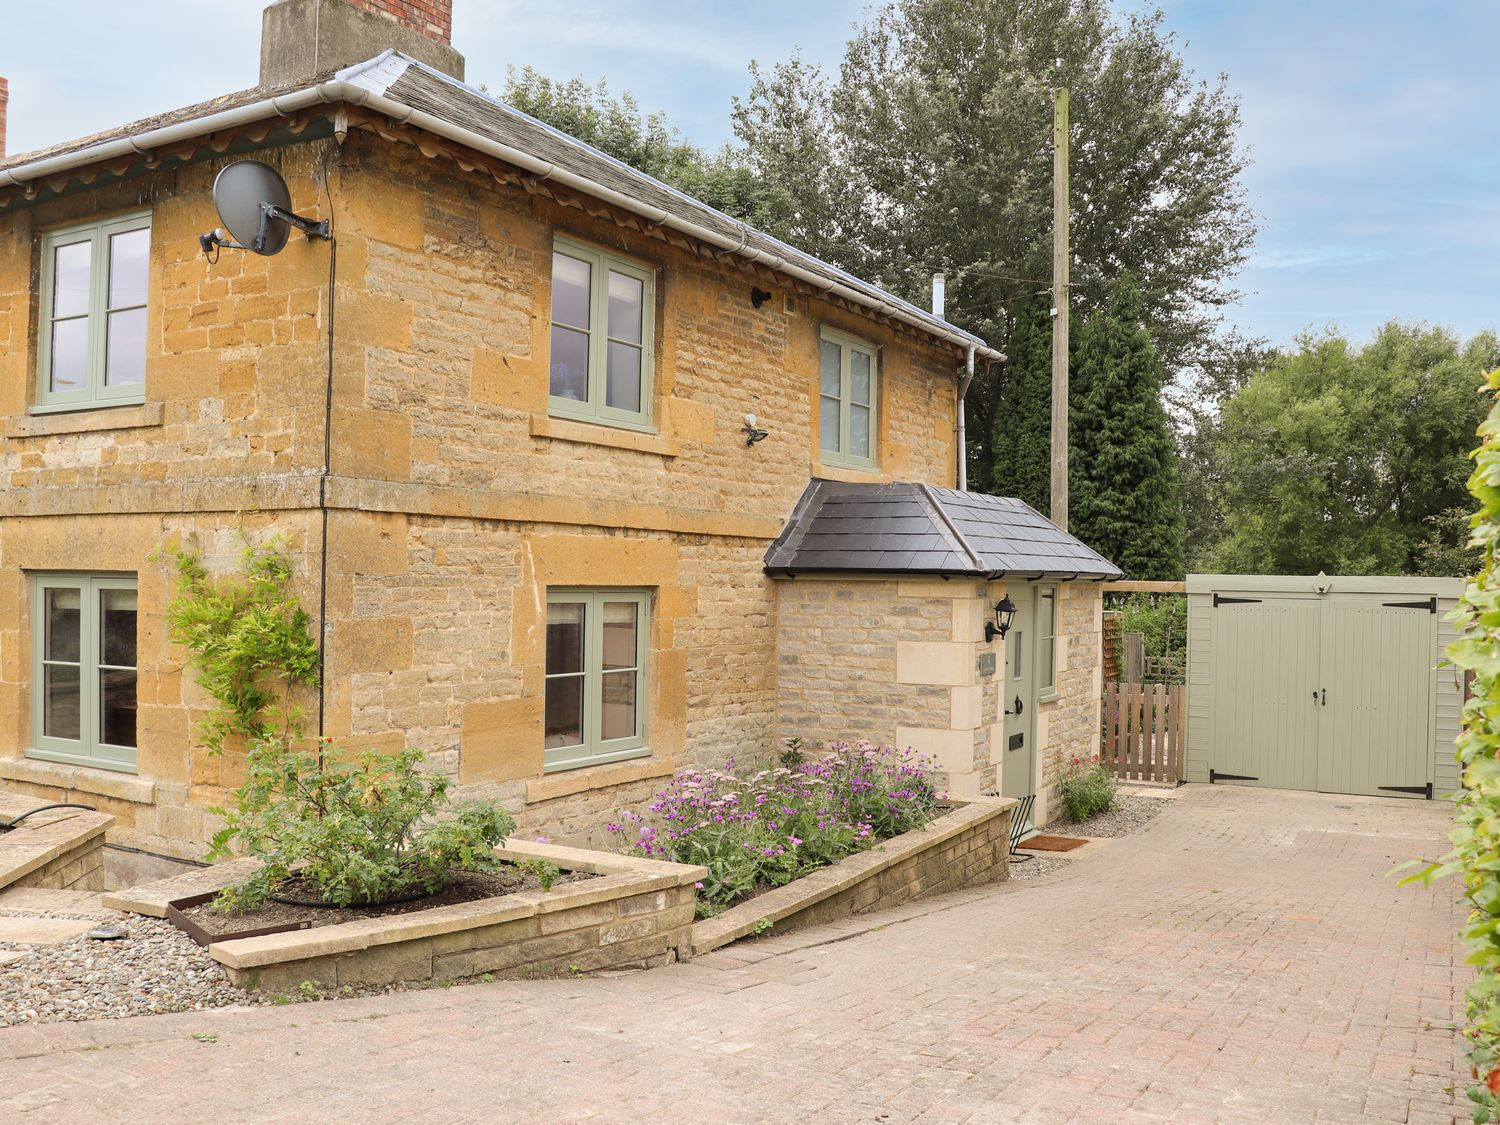 4 Lower Folley - Cotswolds - 1082879 - photo 1